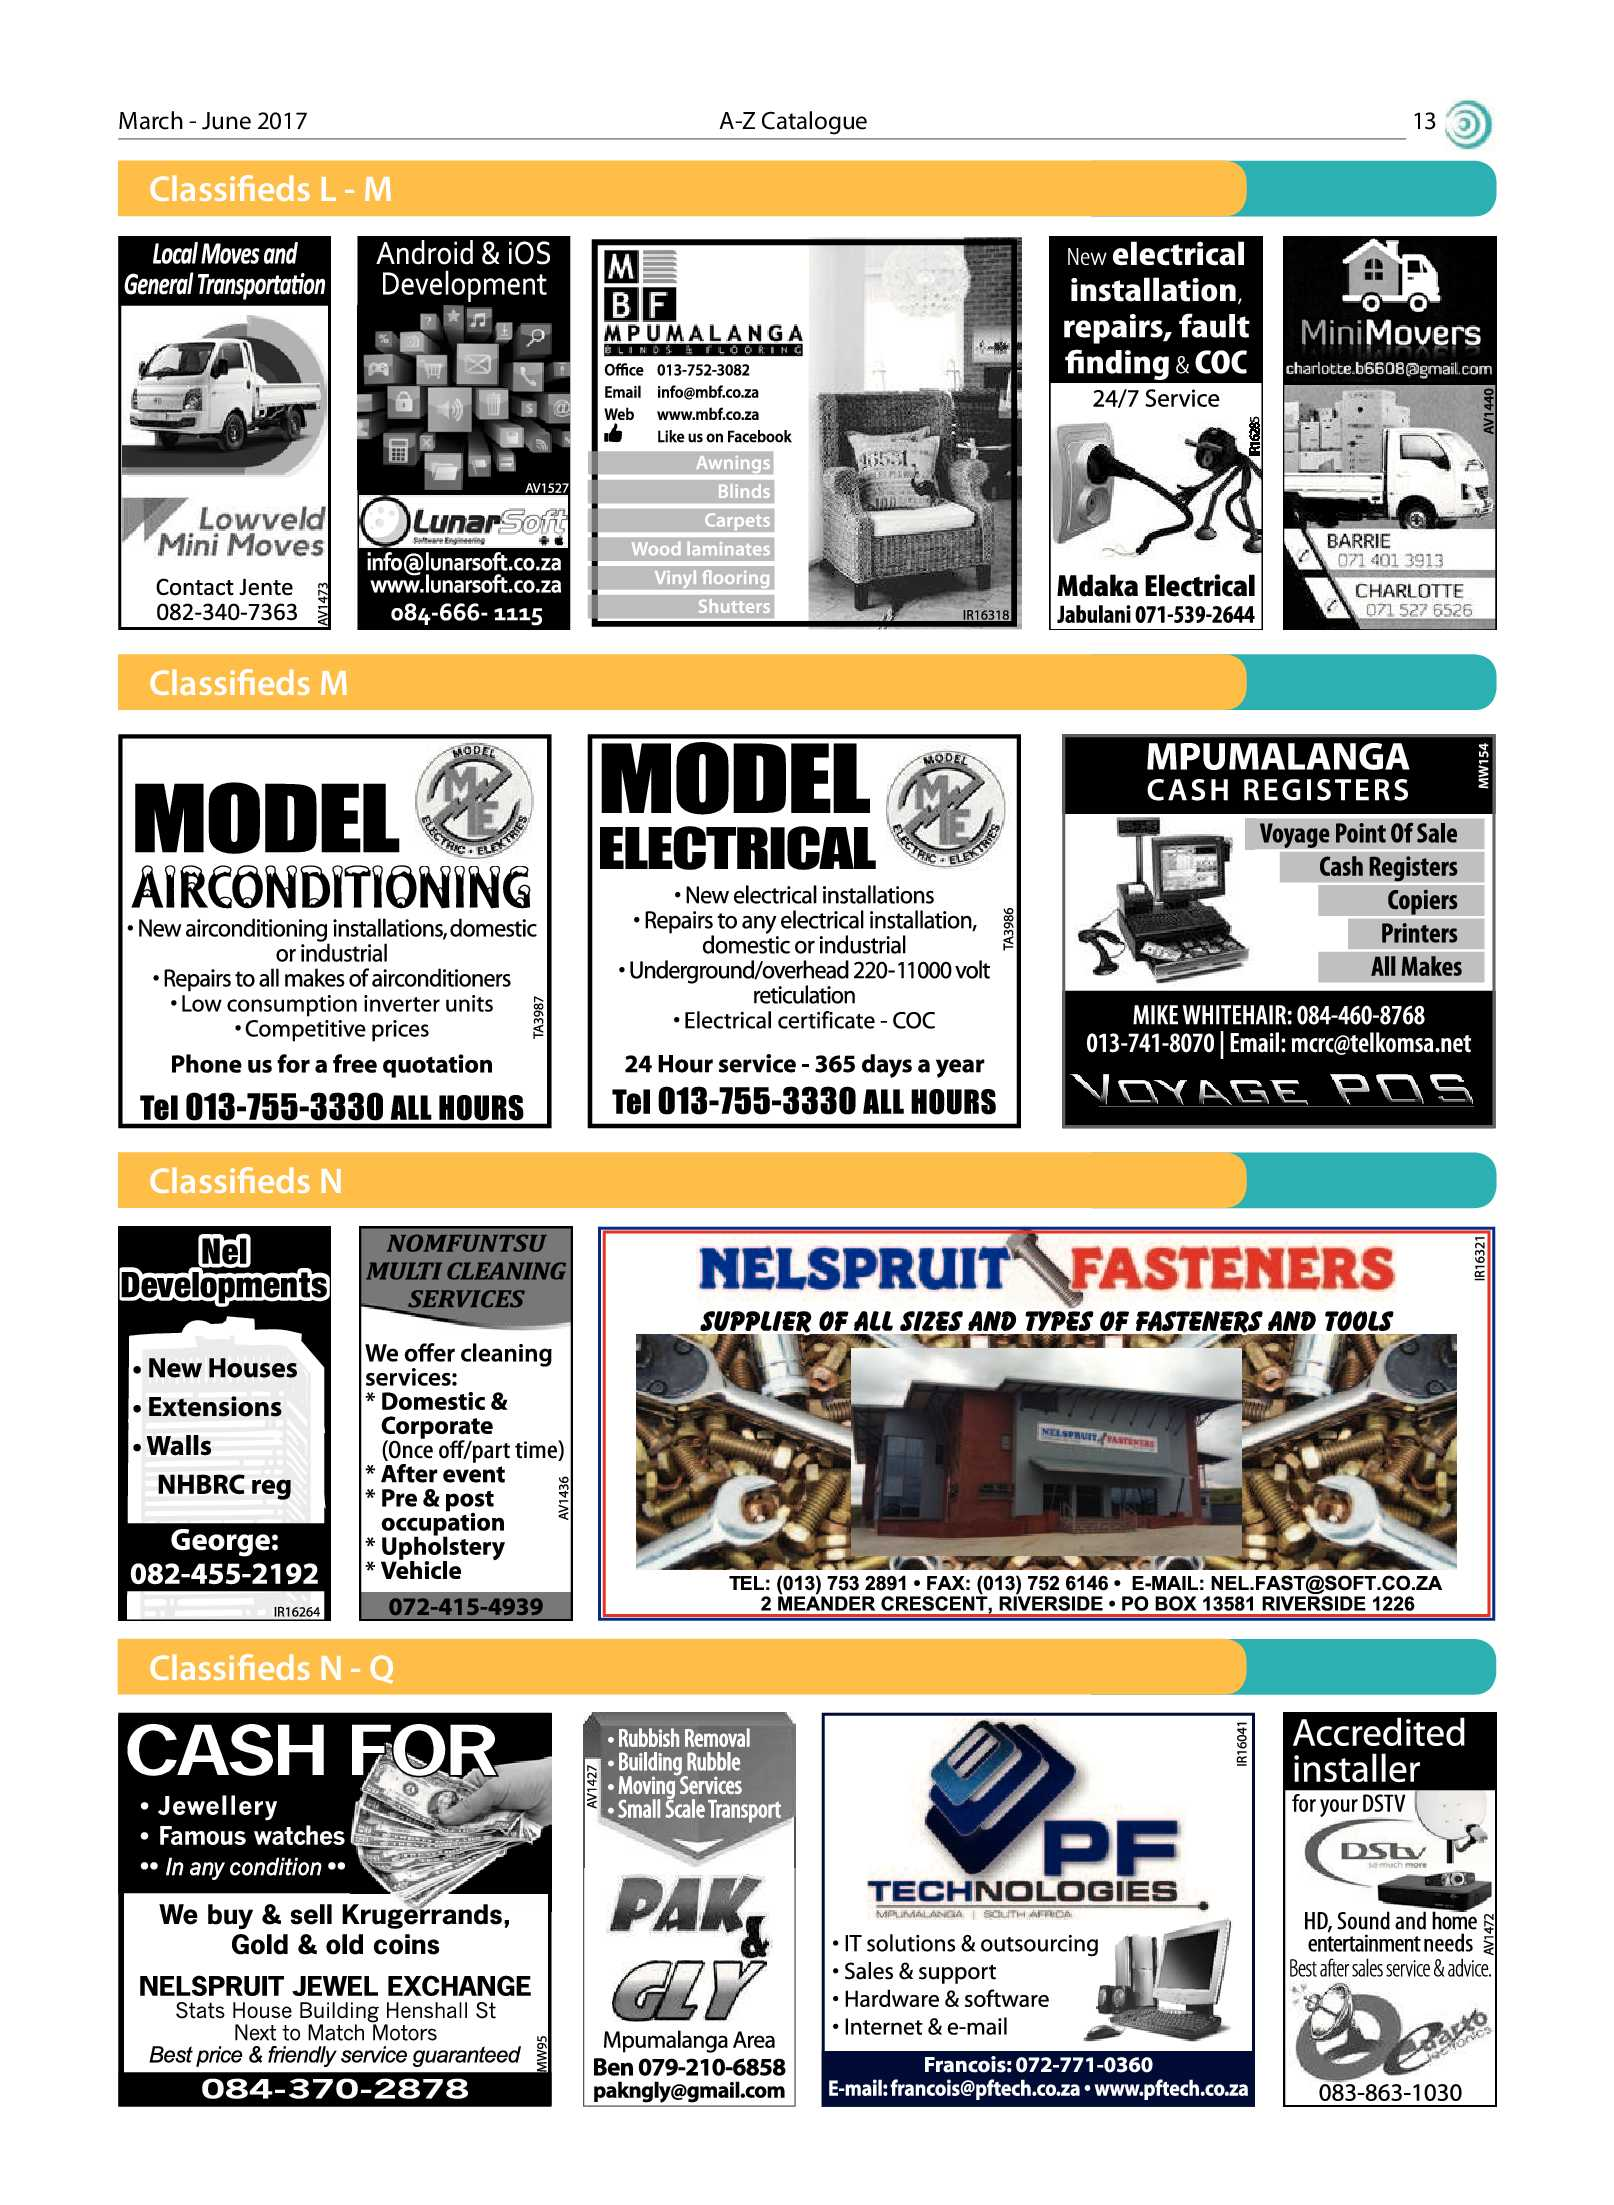 z-catalogue-march-june-2017-epapers-page-13